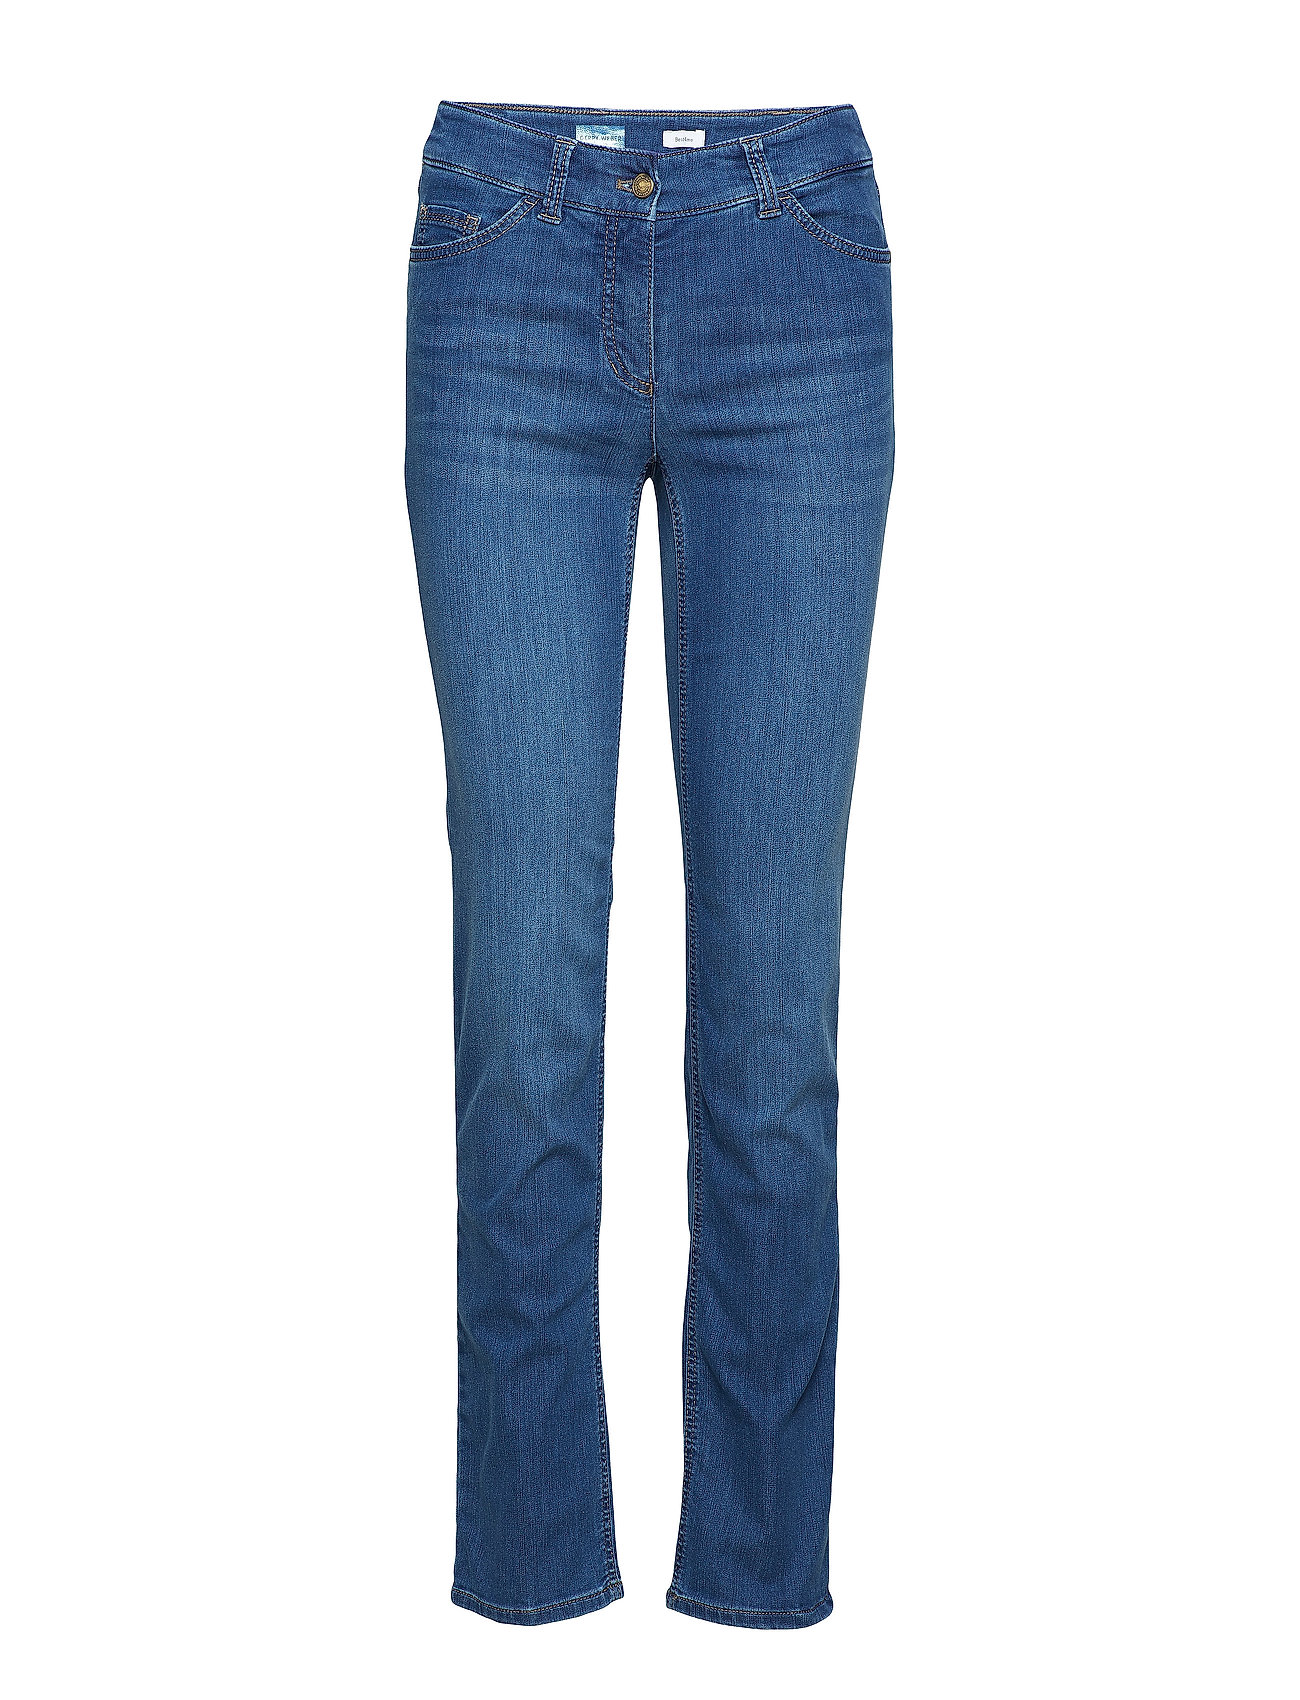 Jeans Long - Gerry Weber Edition